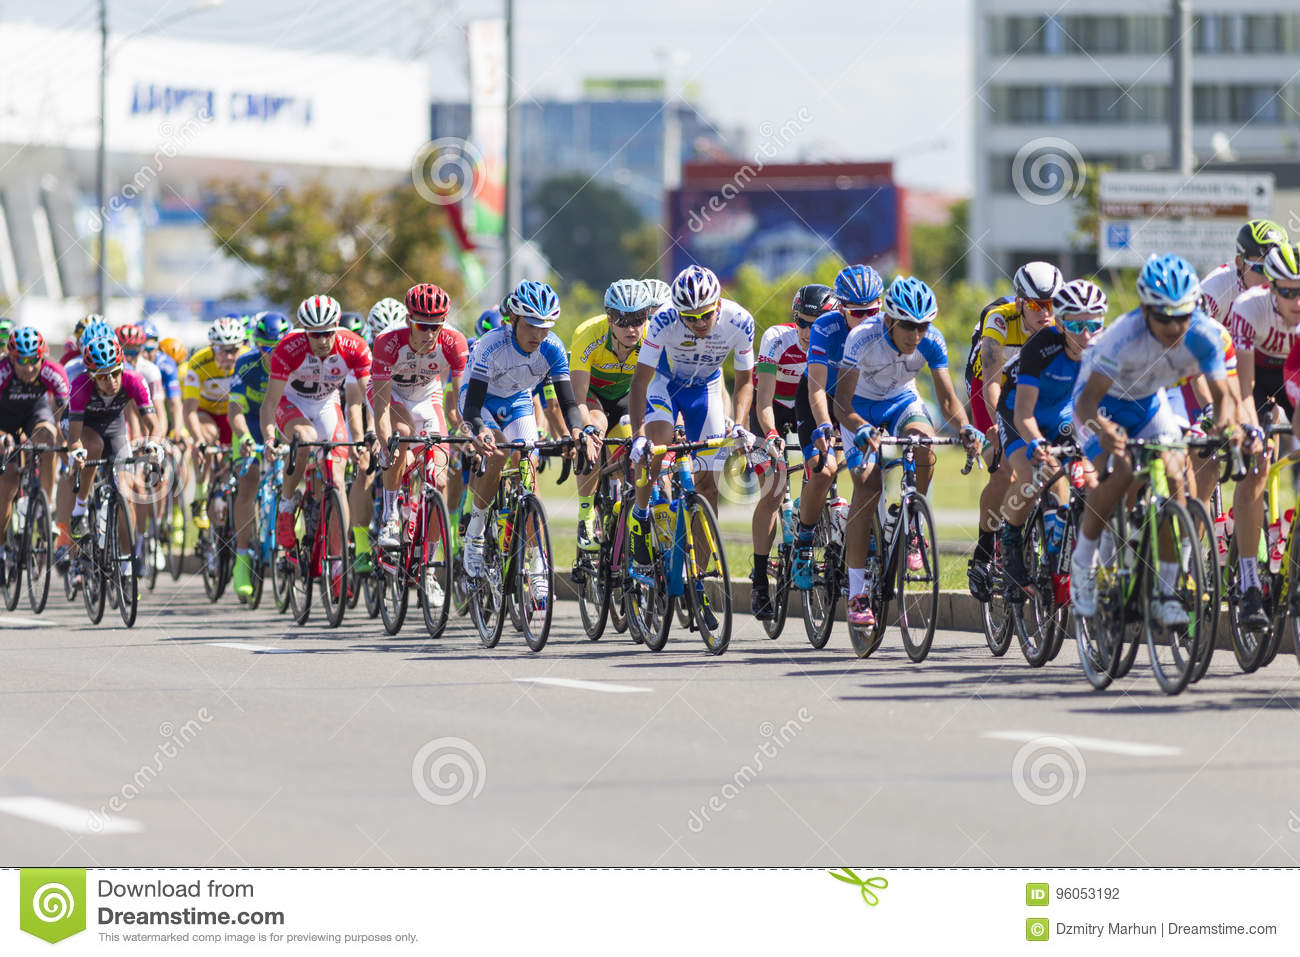 Cyclistes de route dans le Peloton professionnel pendant la concurrence de recyclage Grand prix Minsk-2017 de route international